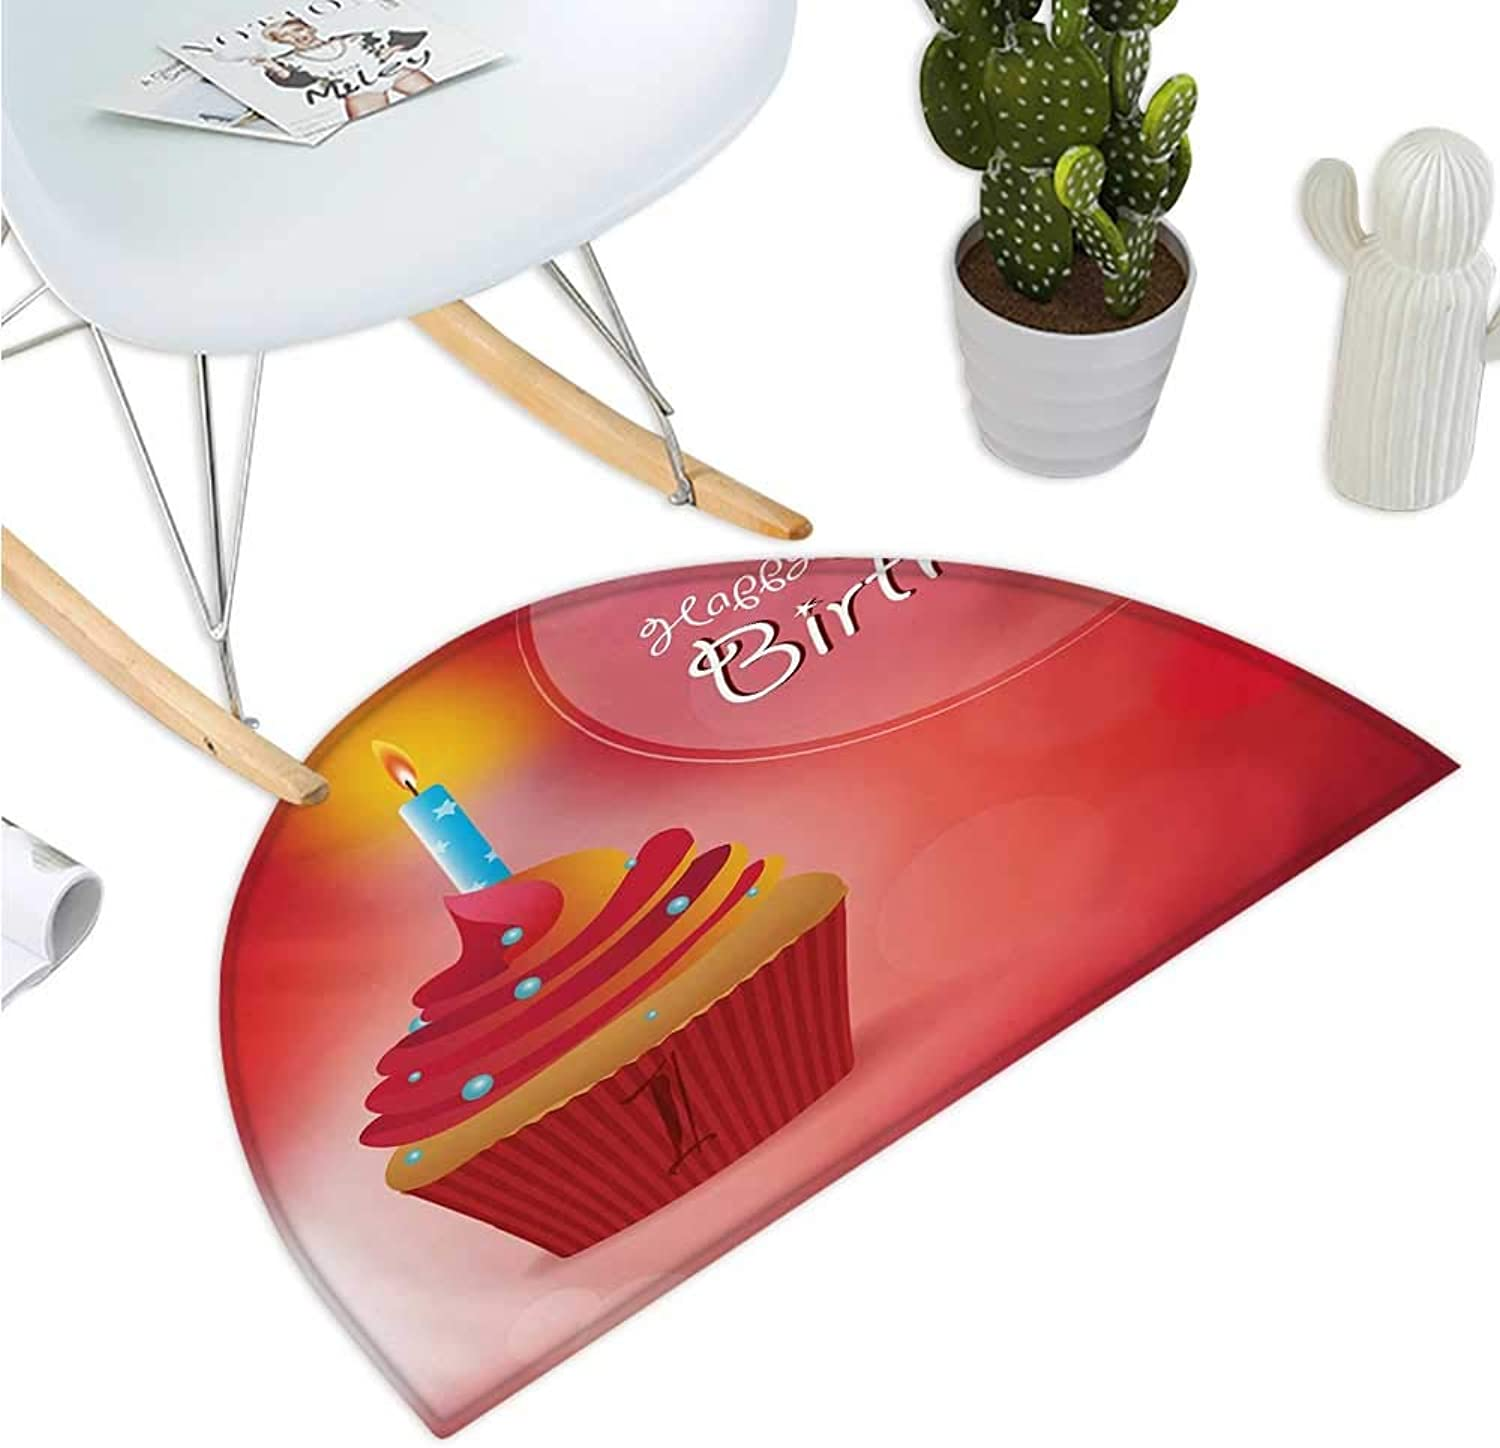 1st Birthday Semicircular Cushion Abstract Background with Sunbeams and Party Cupcake Candlestick Image Halfmoon doormats H 51.1  xD 76.7  orange and Red